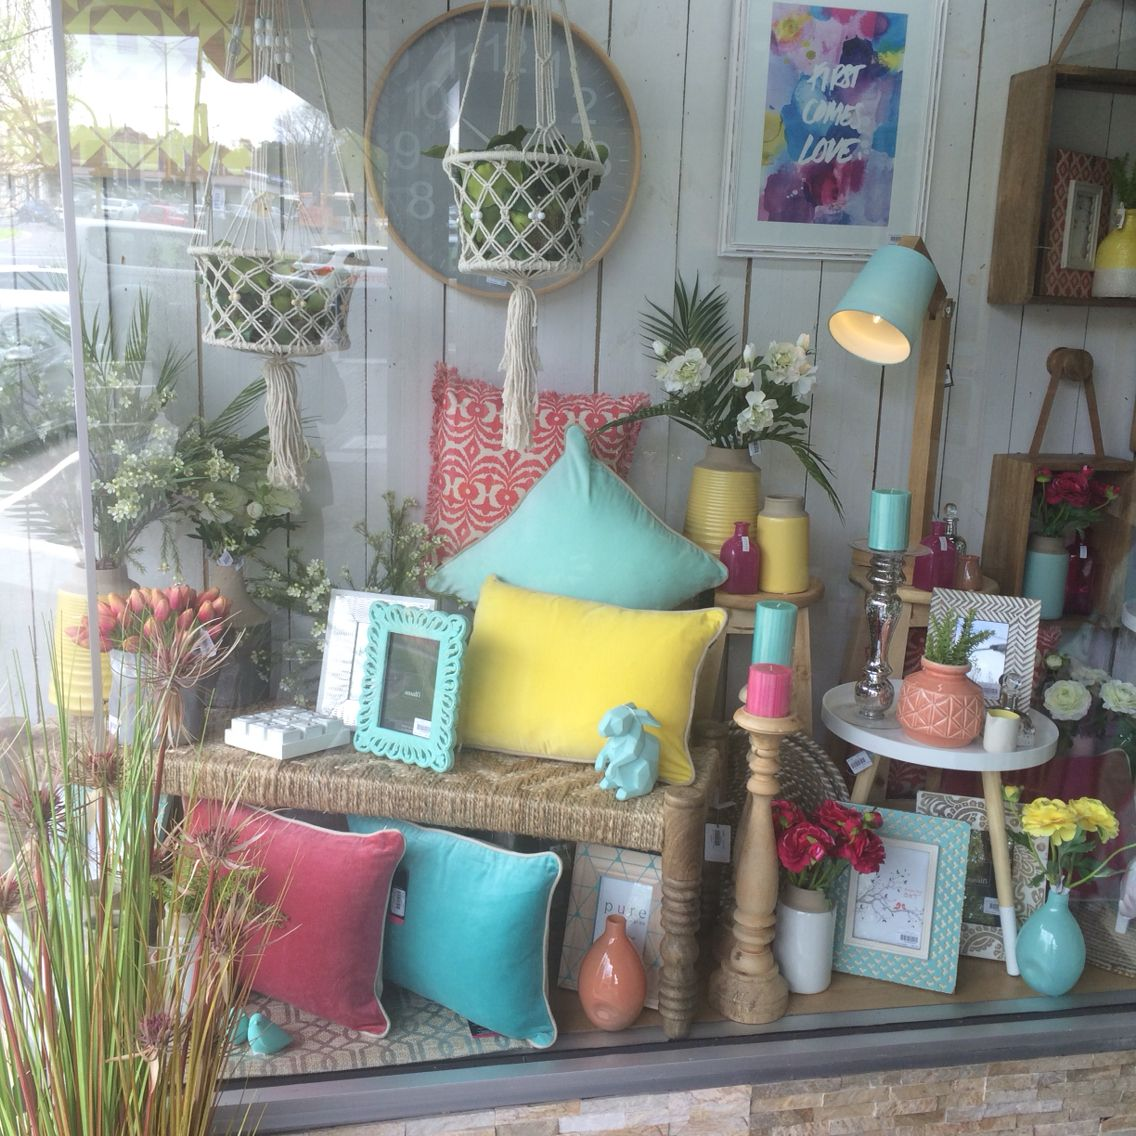 Home Furnishing Stores: Our Gelati Window Display At Lavish Abode Home Decor